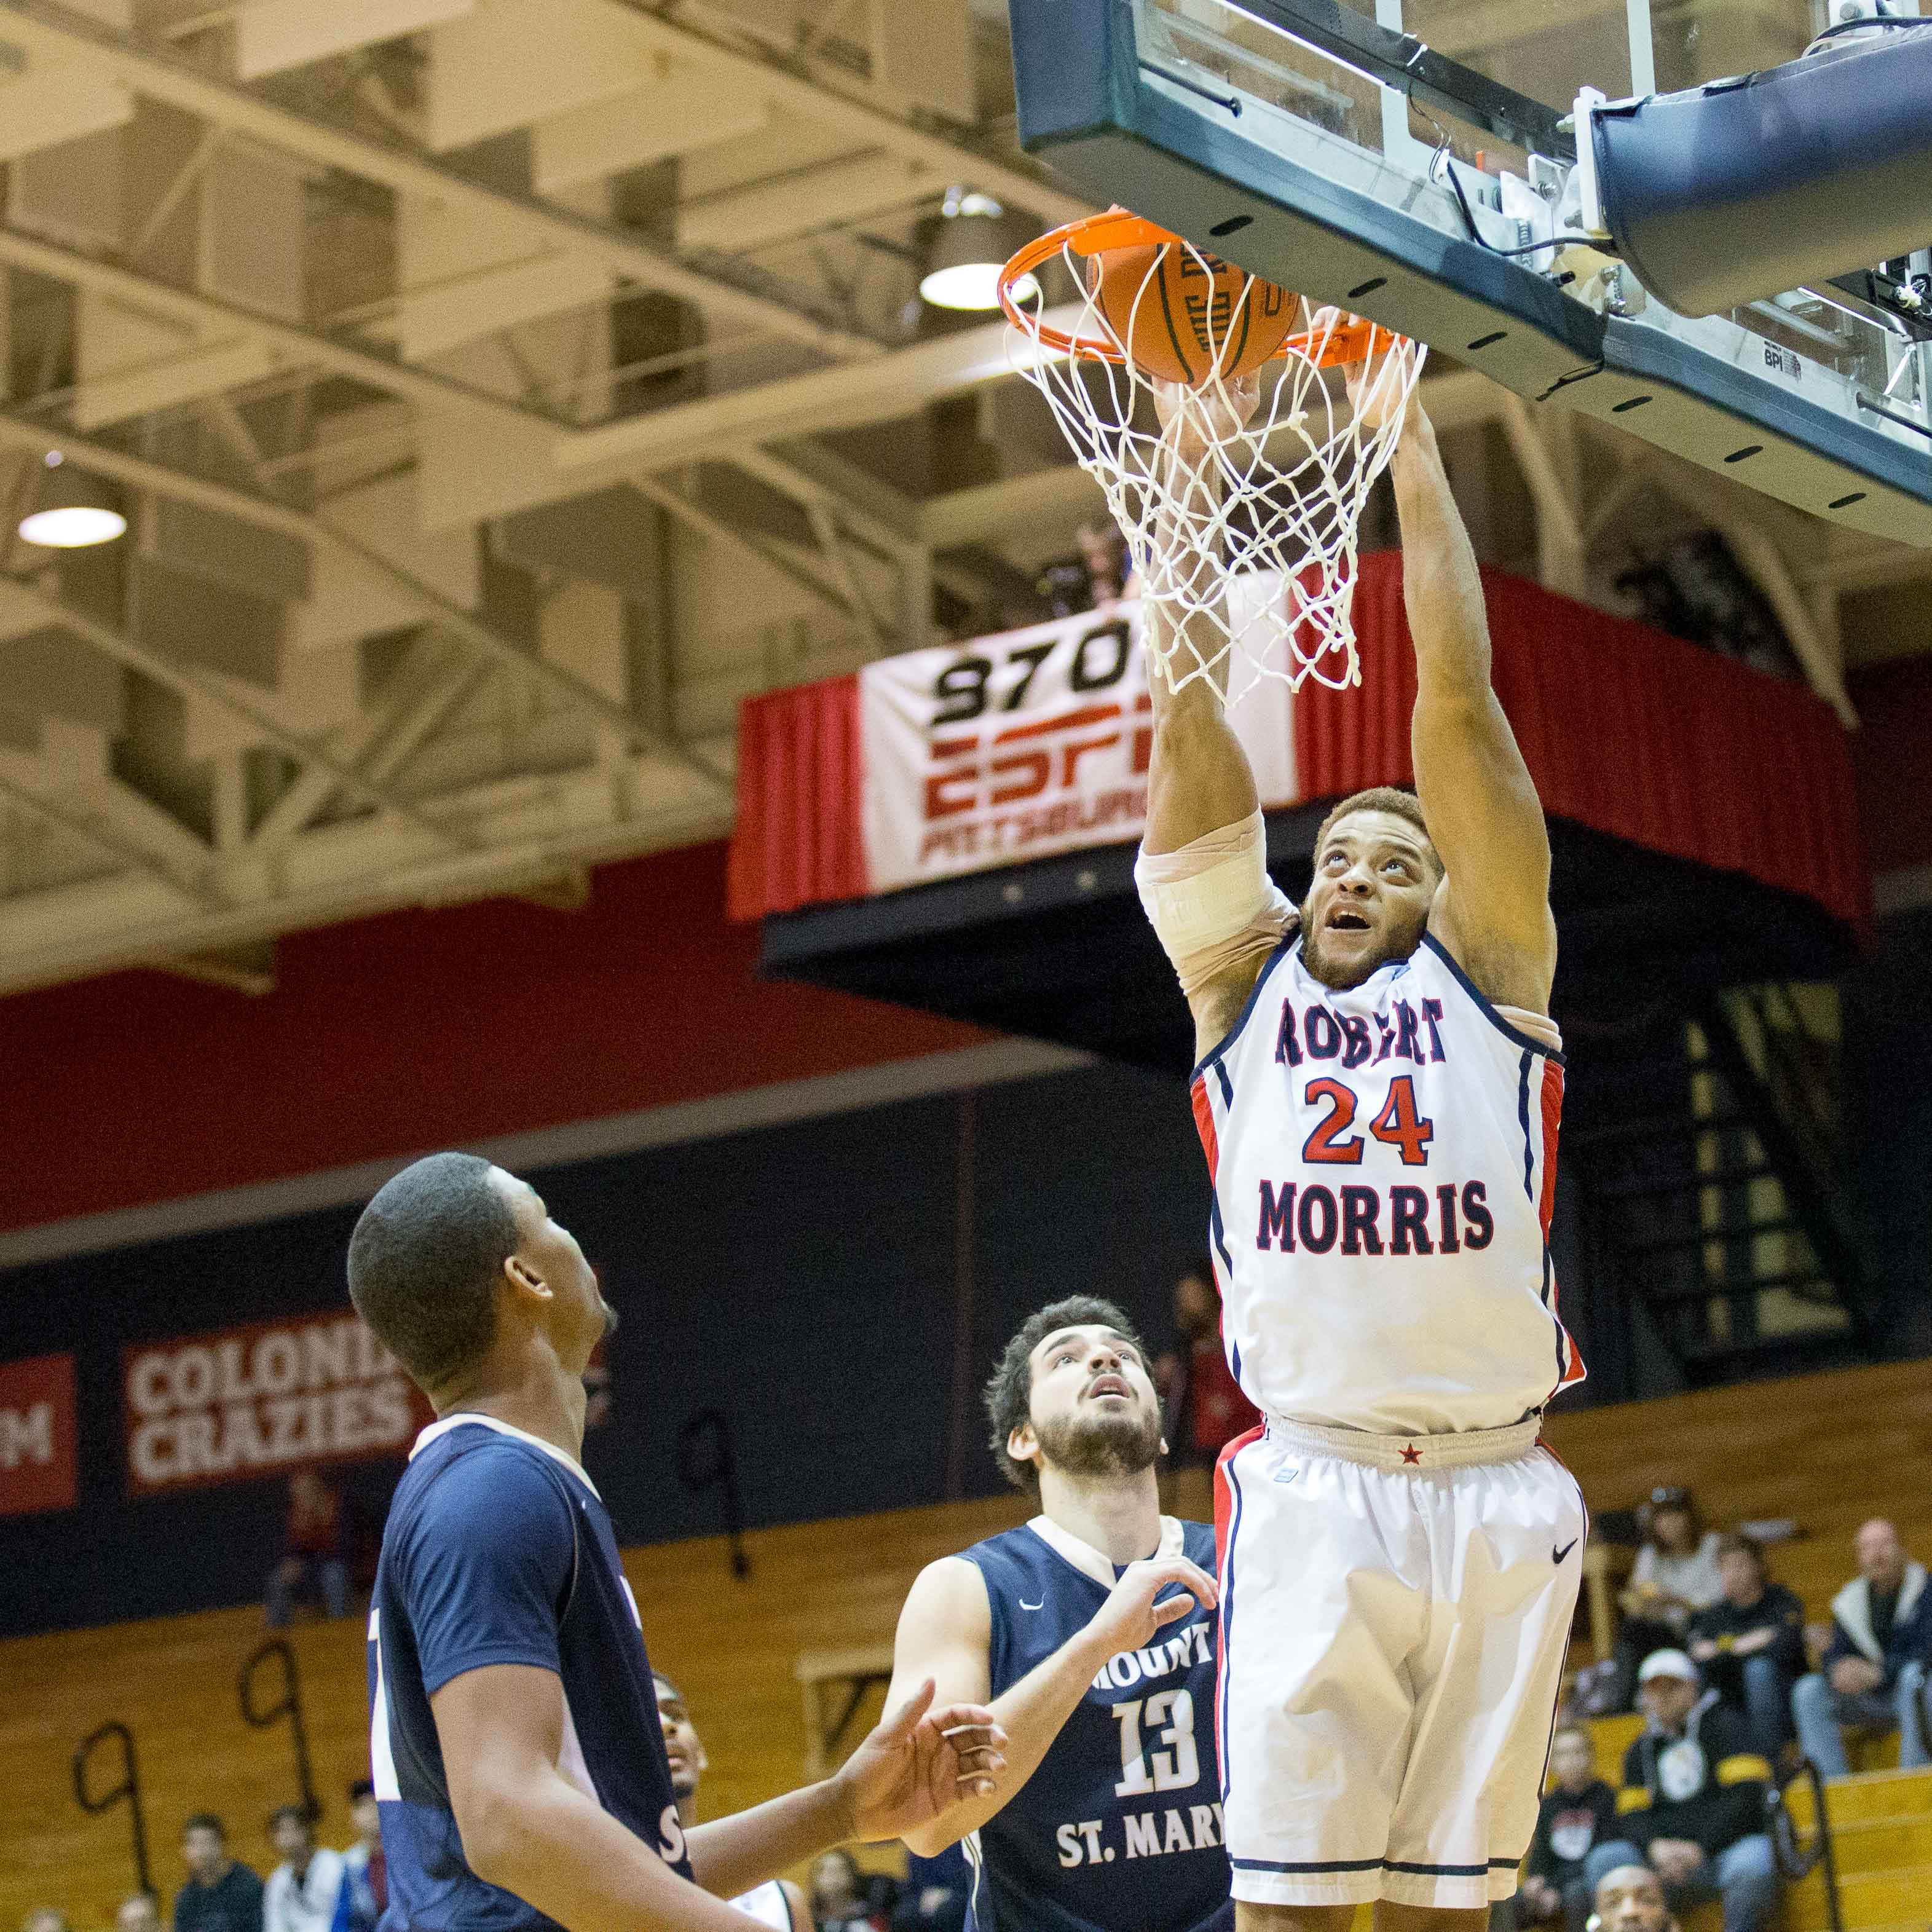 Aaron Tate contributed eight points, four rebounds and three assists in RMU's 25 point win over Mount St. Mary's Saturday.